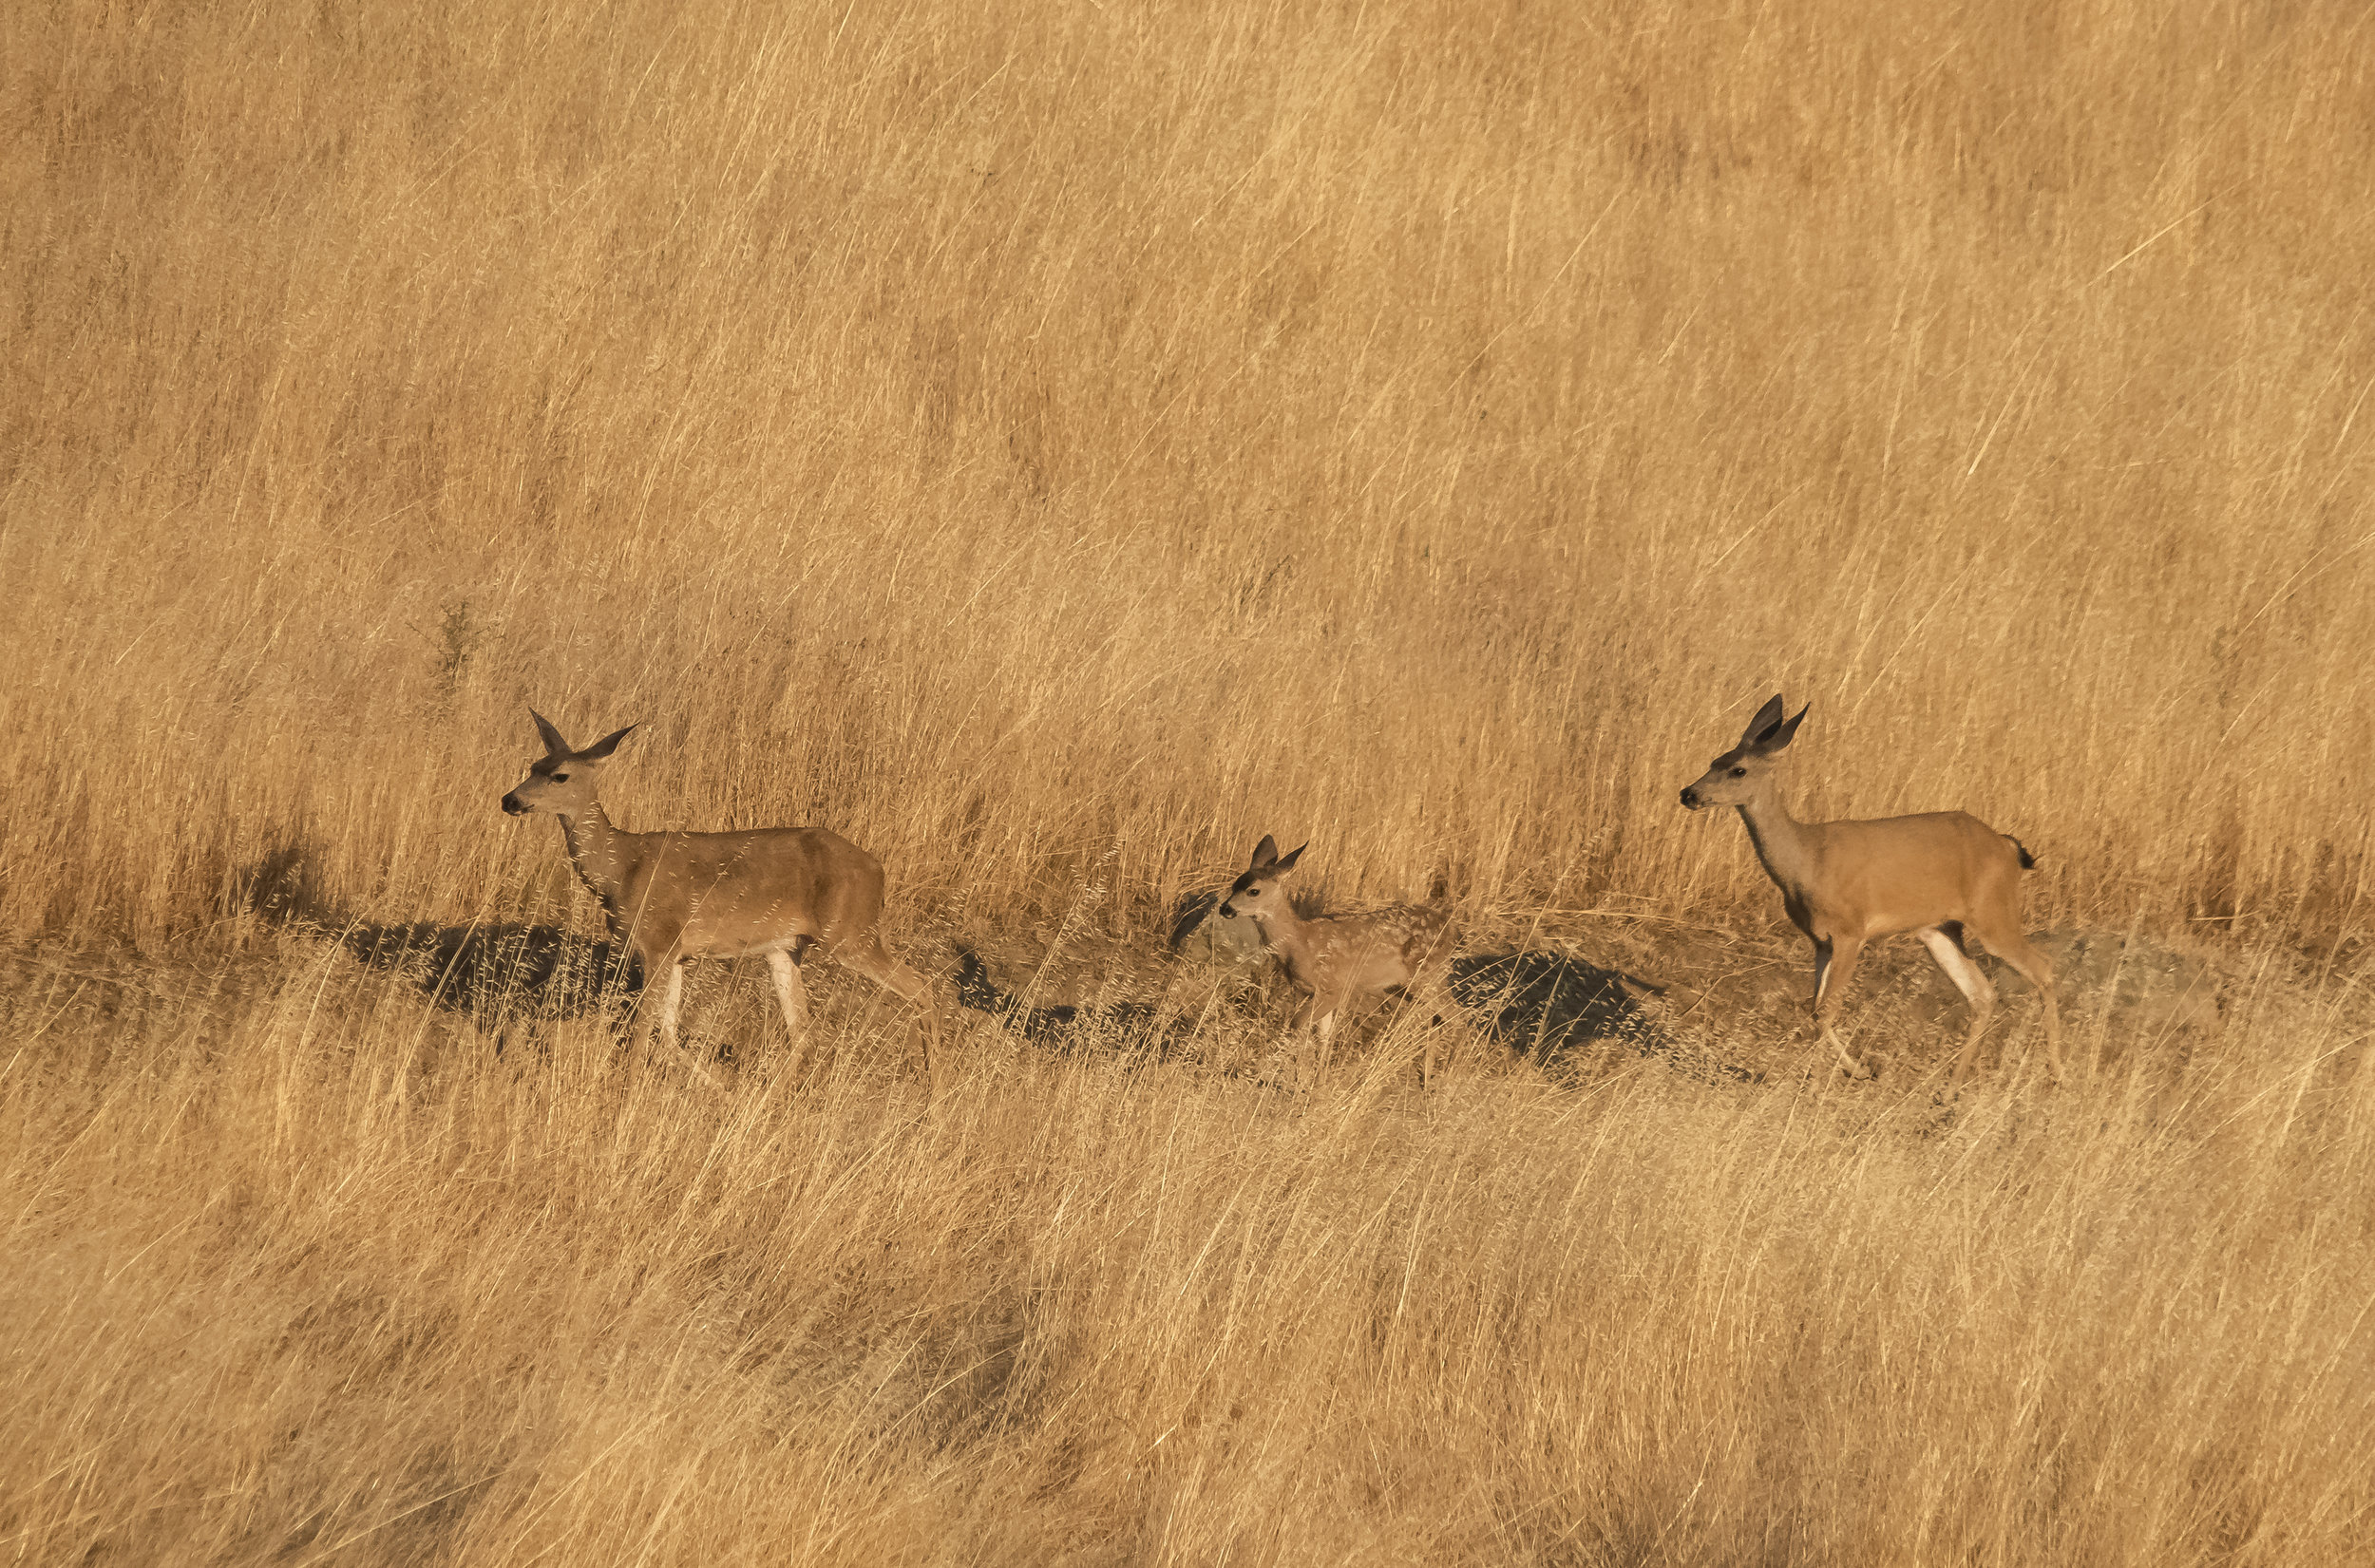 Deer Family at Coyote Valley Open Space Preserve, Morgan Hill, California